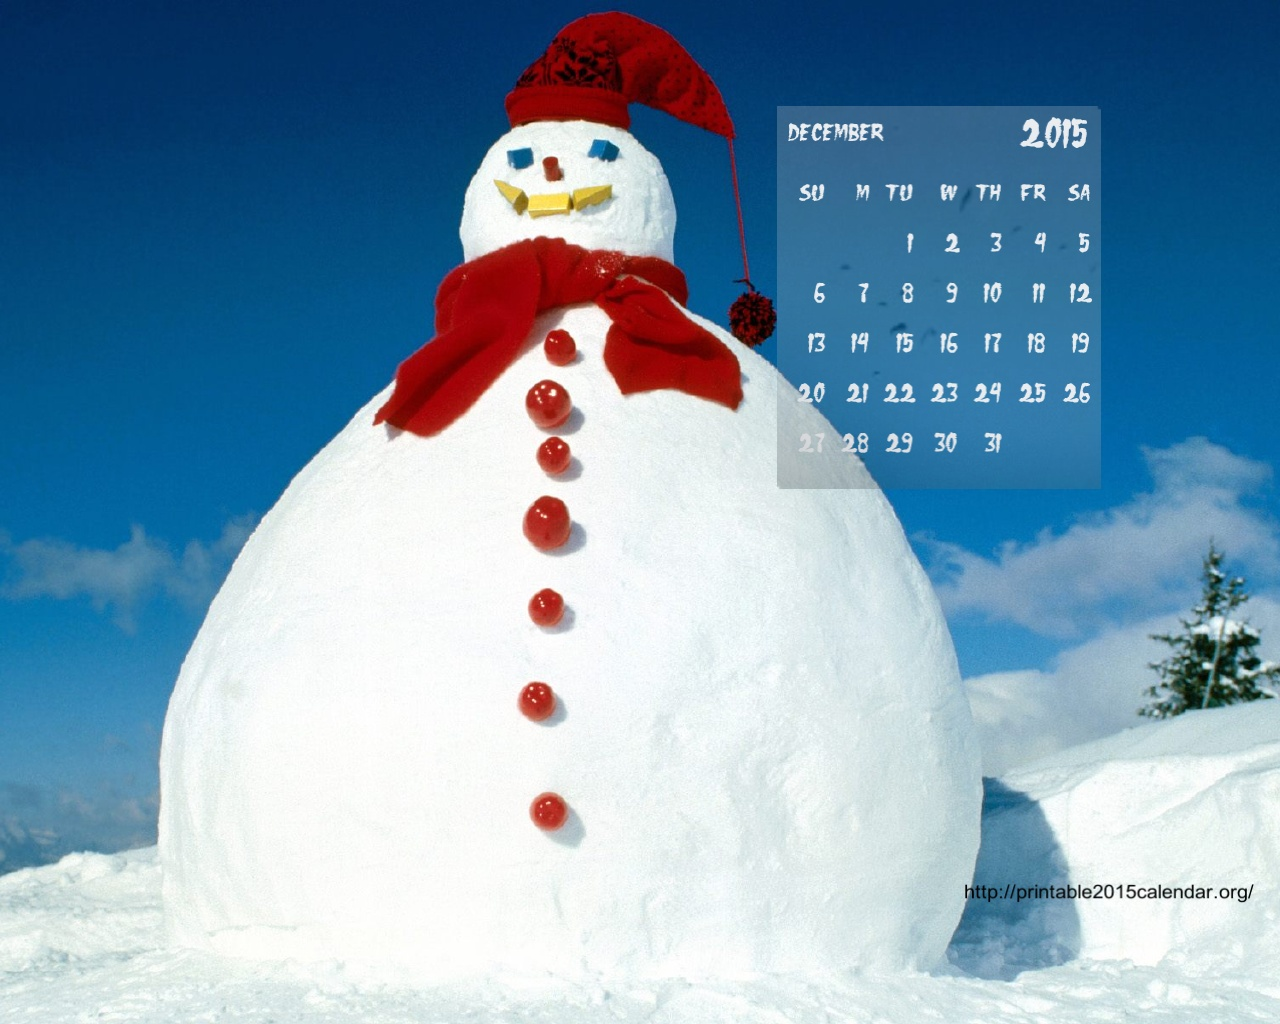 2015 Monthly Calendar Wallpaper 2015 Calendar 1280x1024